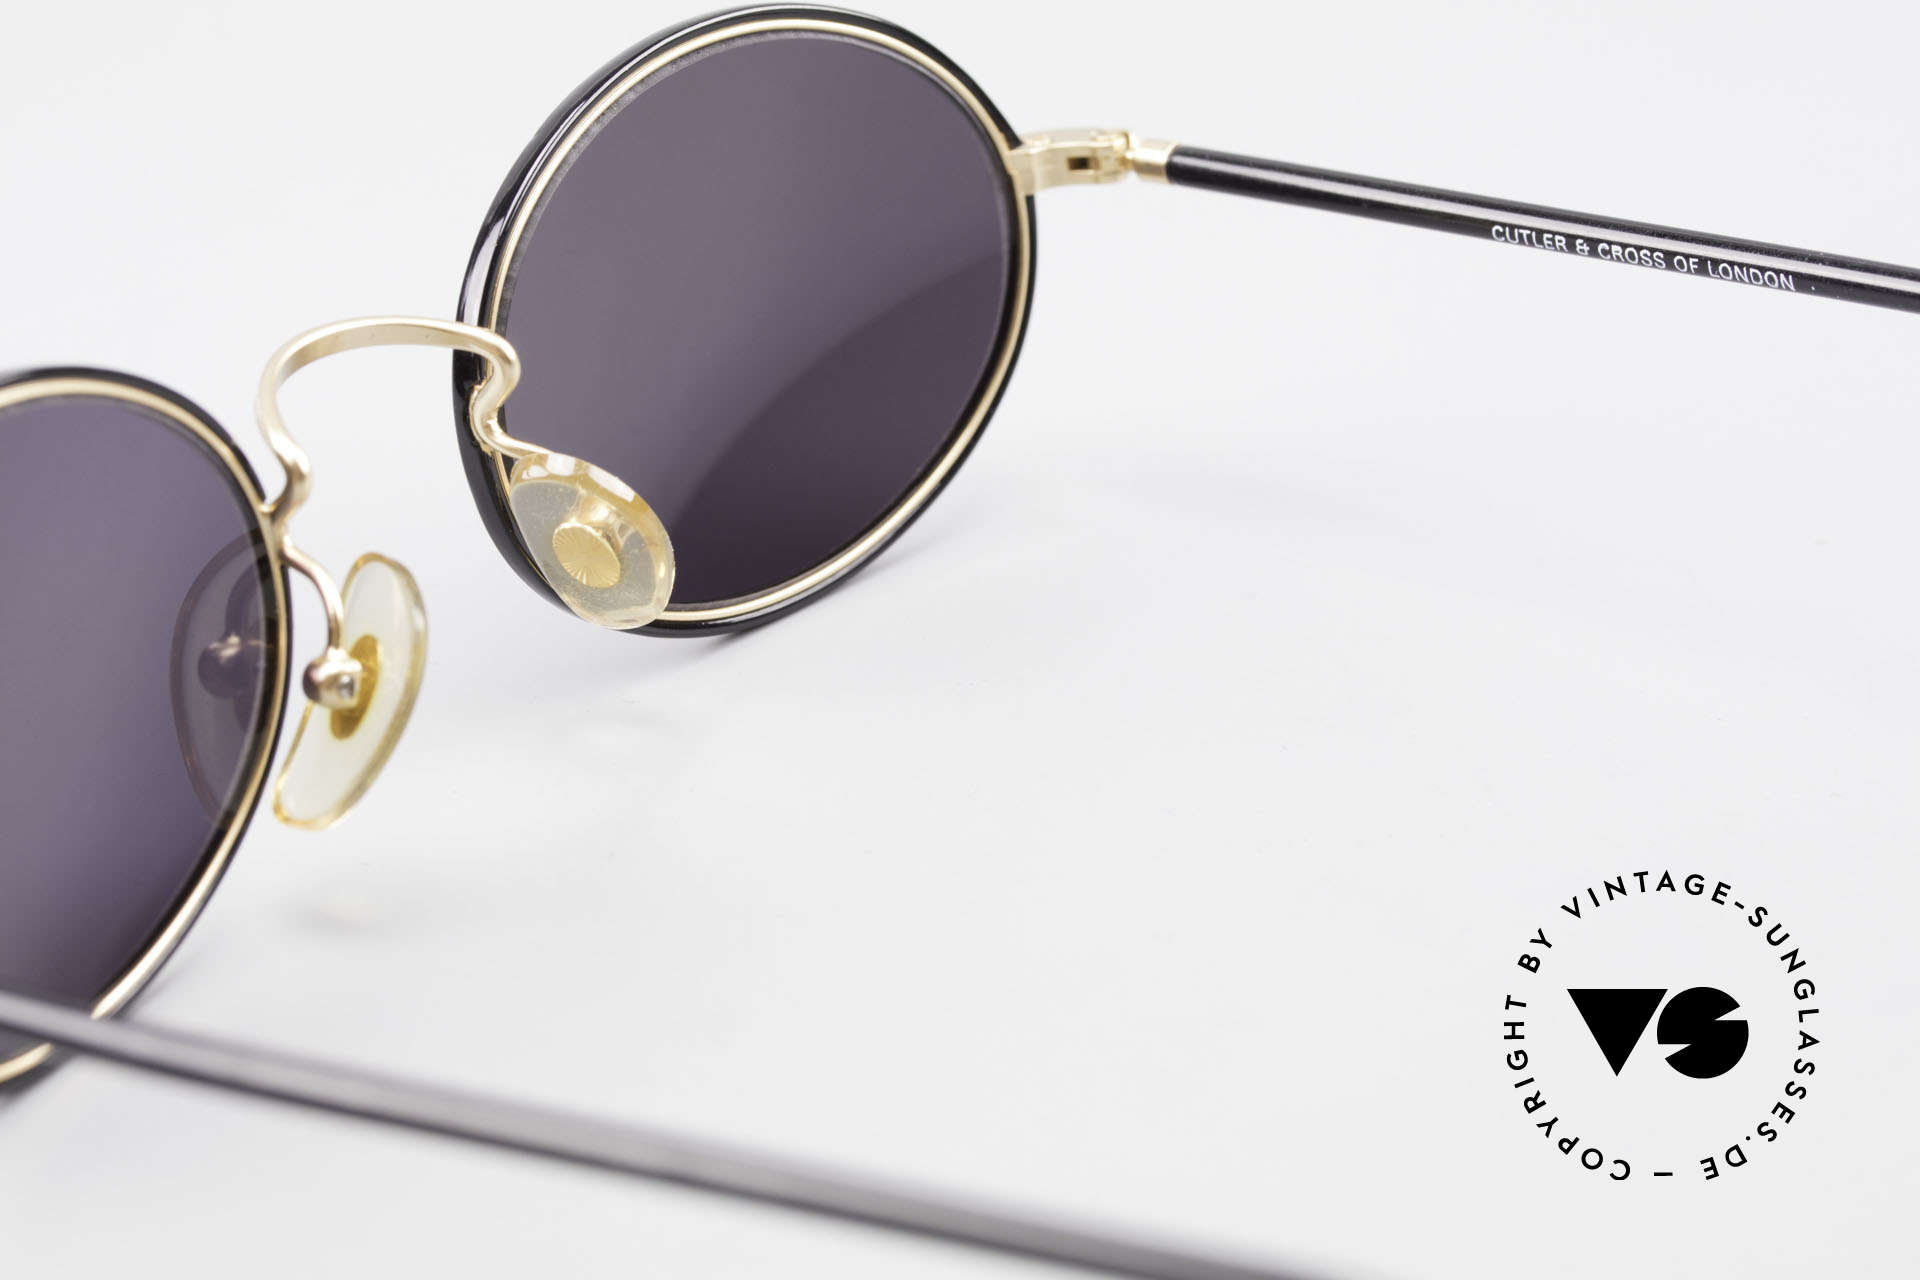 Cutler And Gross 0350 90's Oval Vintage Sunglasses, NO RETRO fashion, but a unique 20 years old ORIGINAL, Made for Men and Women